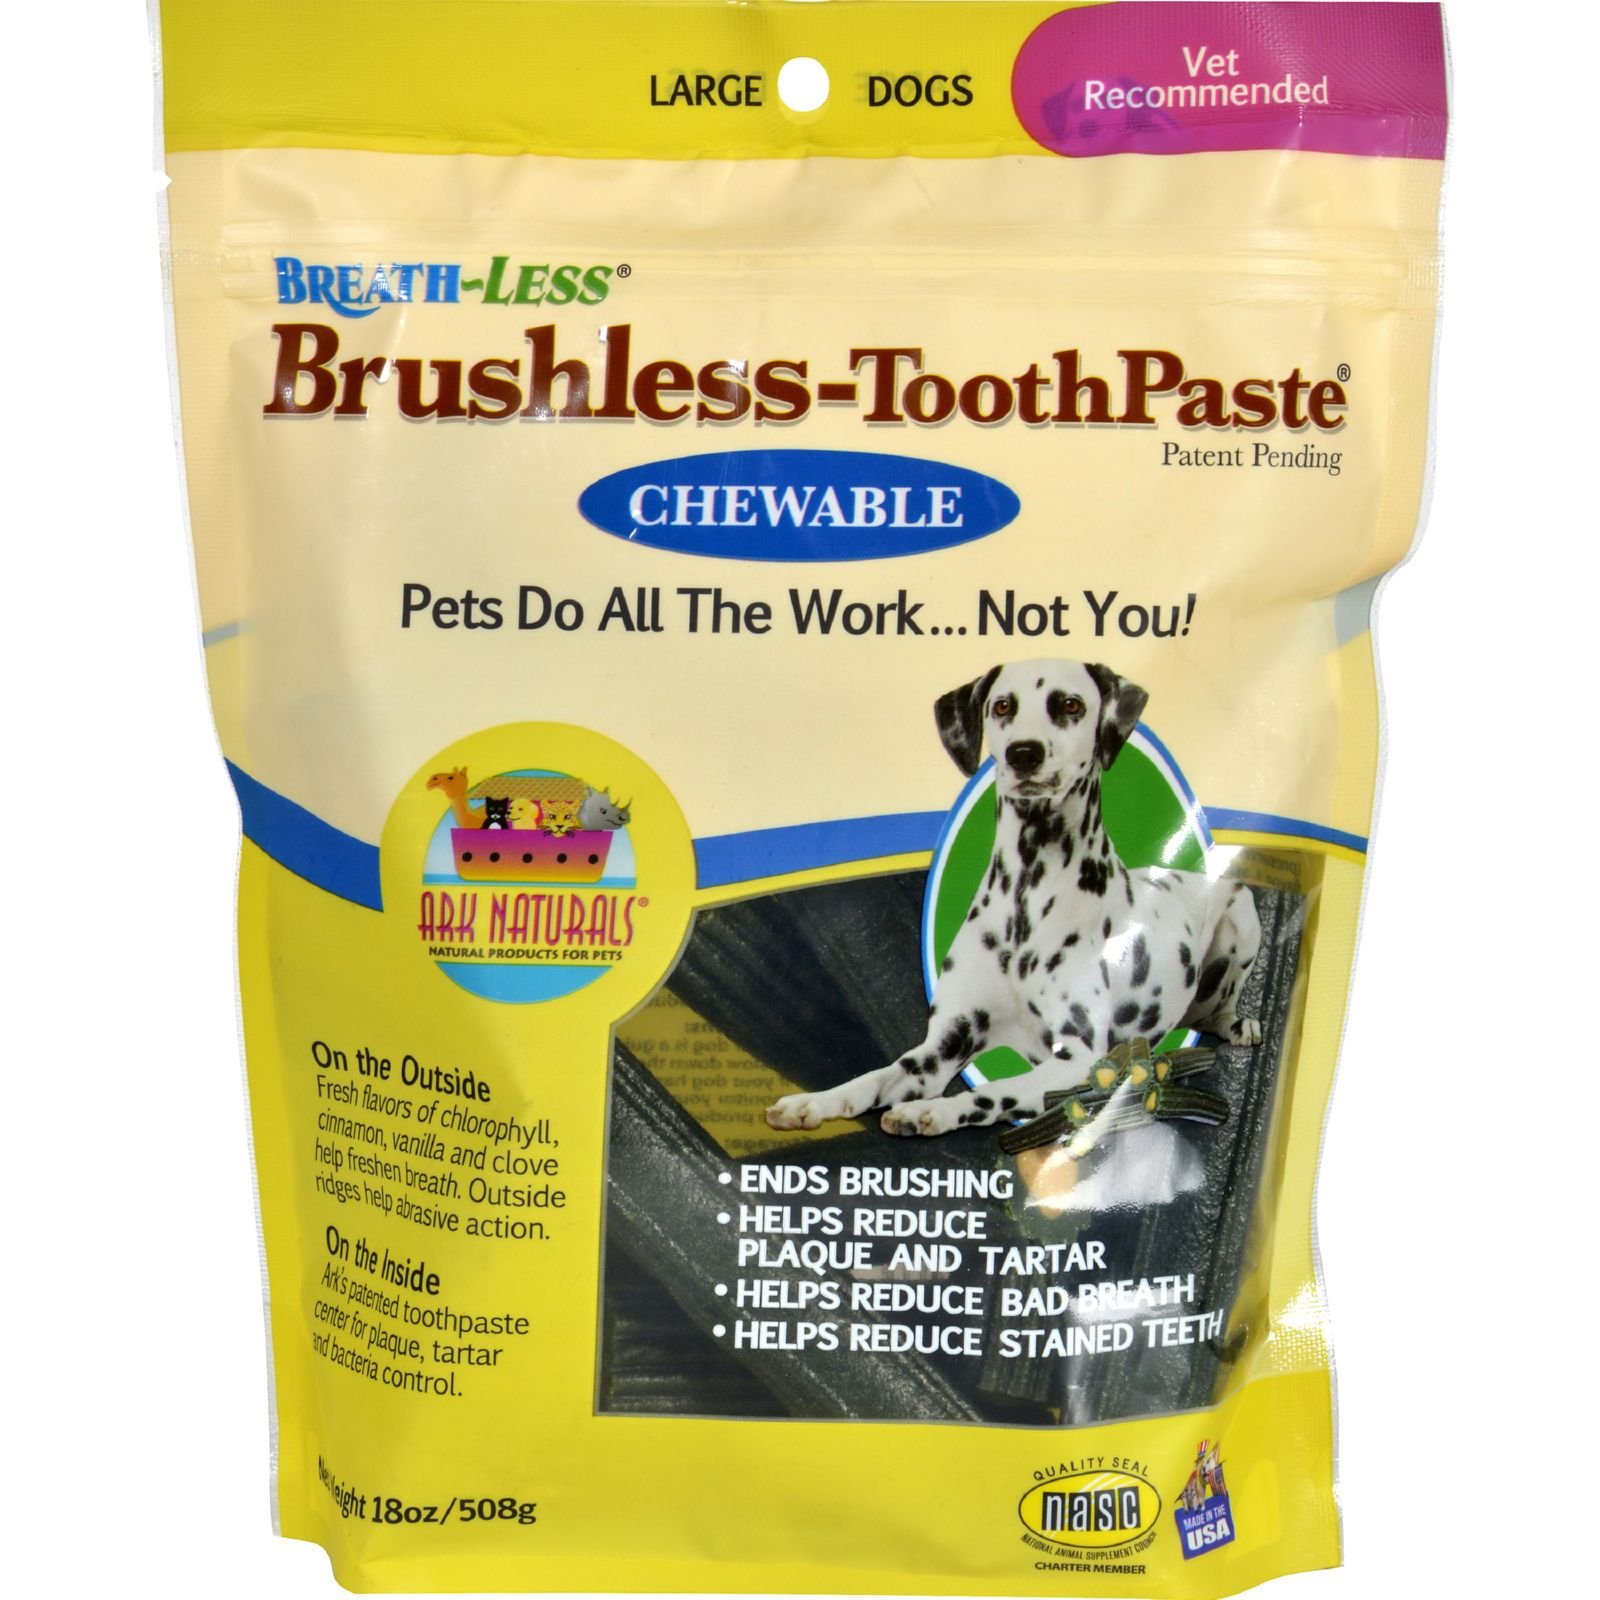 Ark Naturals Breath-Less Brushless-ToothPaste - Chewable - Large Dogs - 18 oz - Gluten Free - Yeast Free-Wheat Free- Natural dental chew for dogs